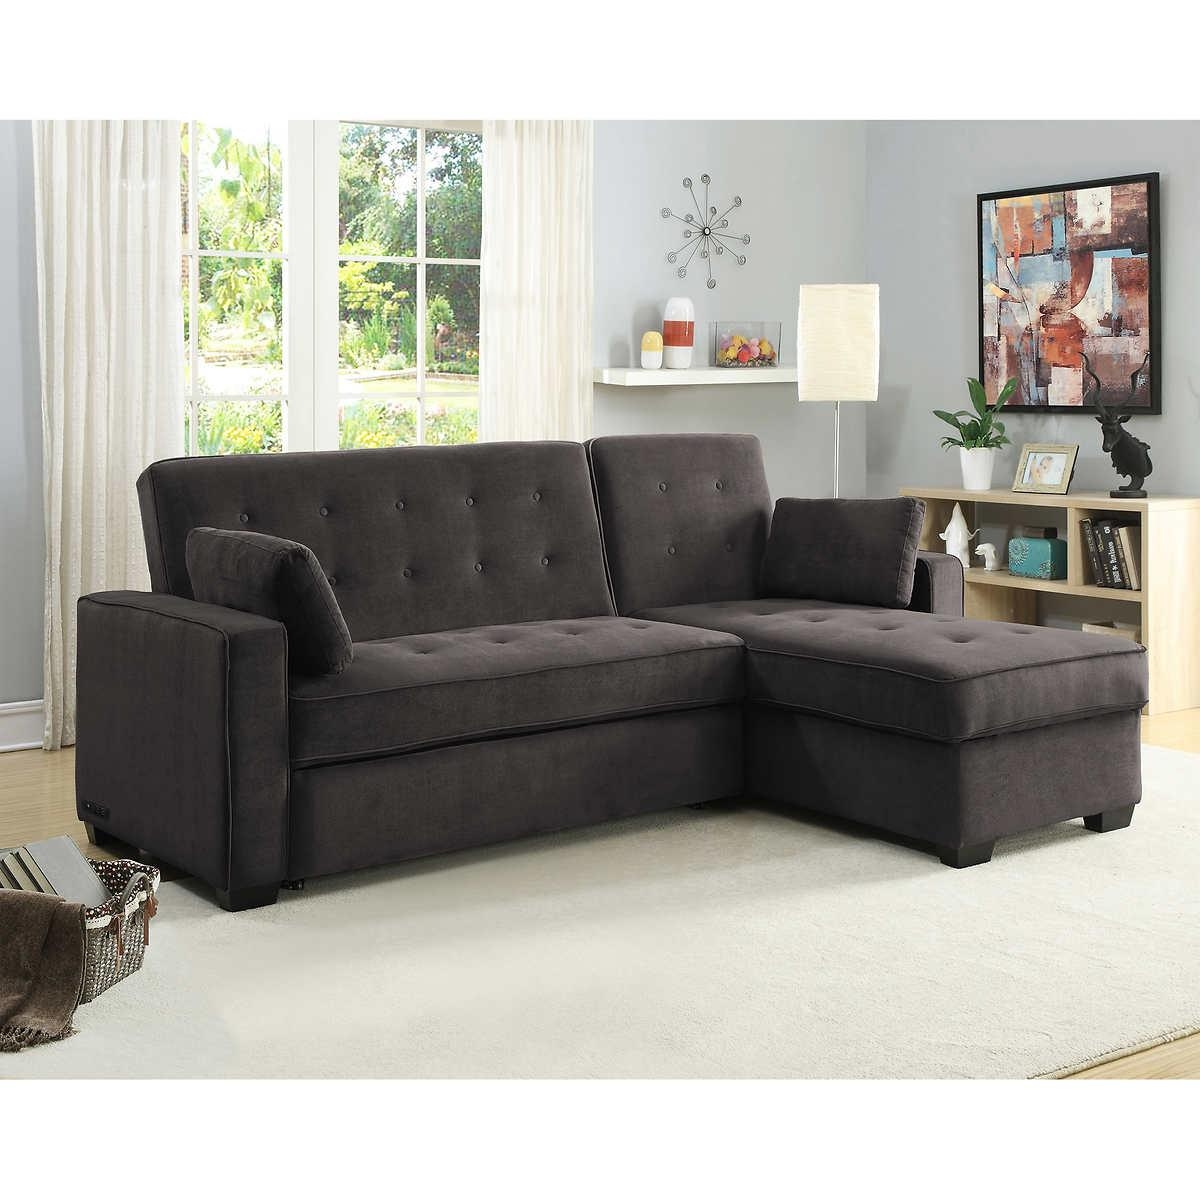 Sofas Center : Costcoower Reclining Sofa Recliner Berkline Sofas With Berkline Couches (Image 13 of 20)